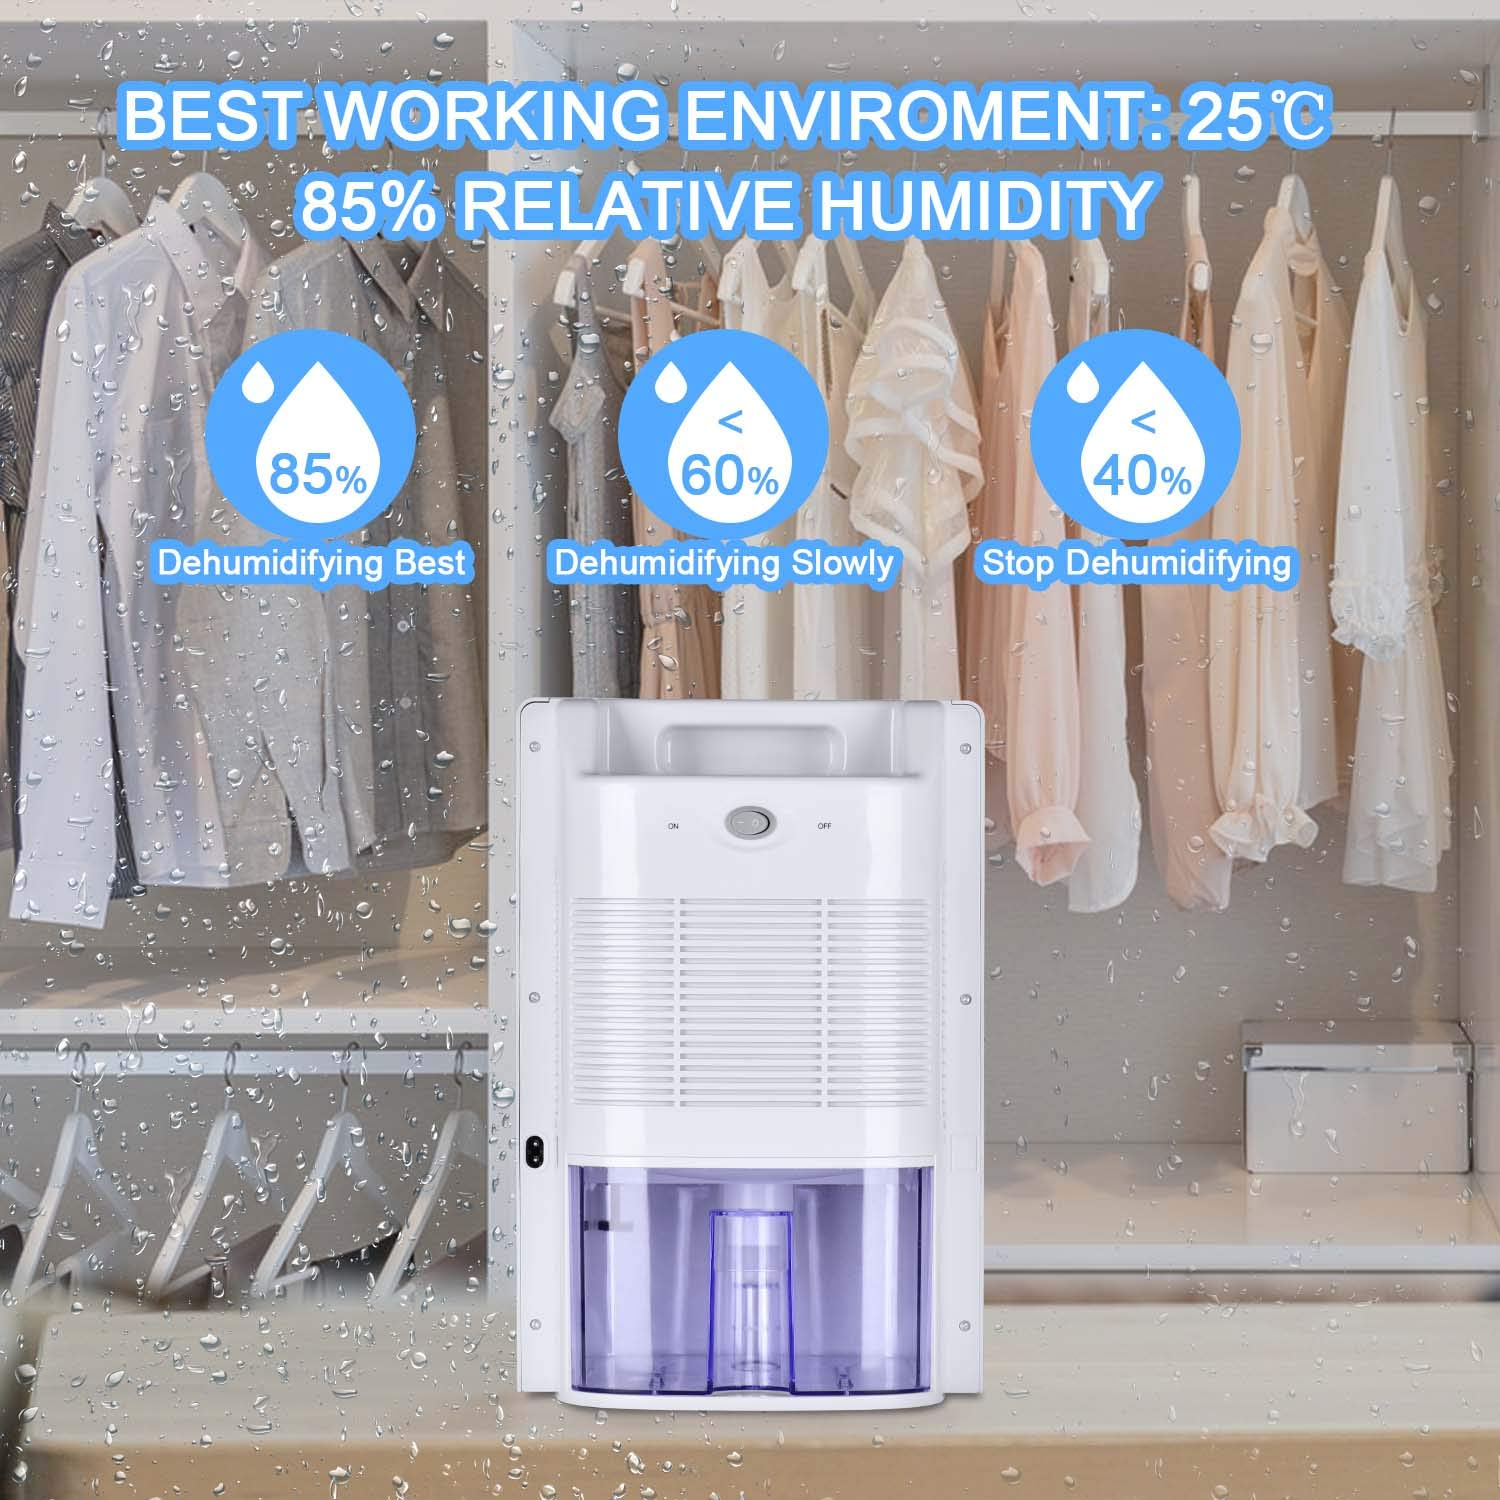 MADETEC Small Dehumidifier 2L Compact and Portable Mini Dehumidifier with Auto Shut-Off for Basement, Bedroom, Home,Closet,Bathroom,Kitchen, Large Room, Caravan, Office, Garage(300 sq ft)